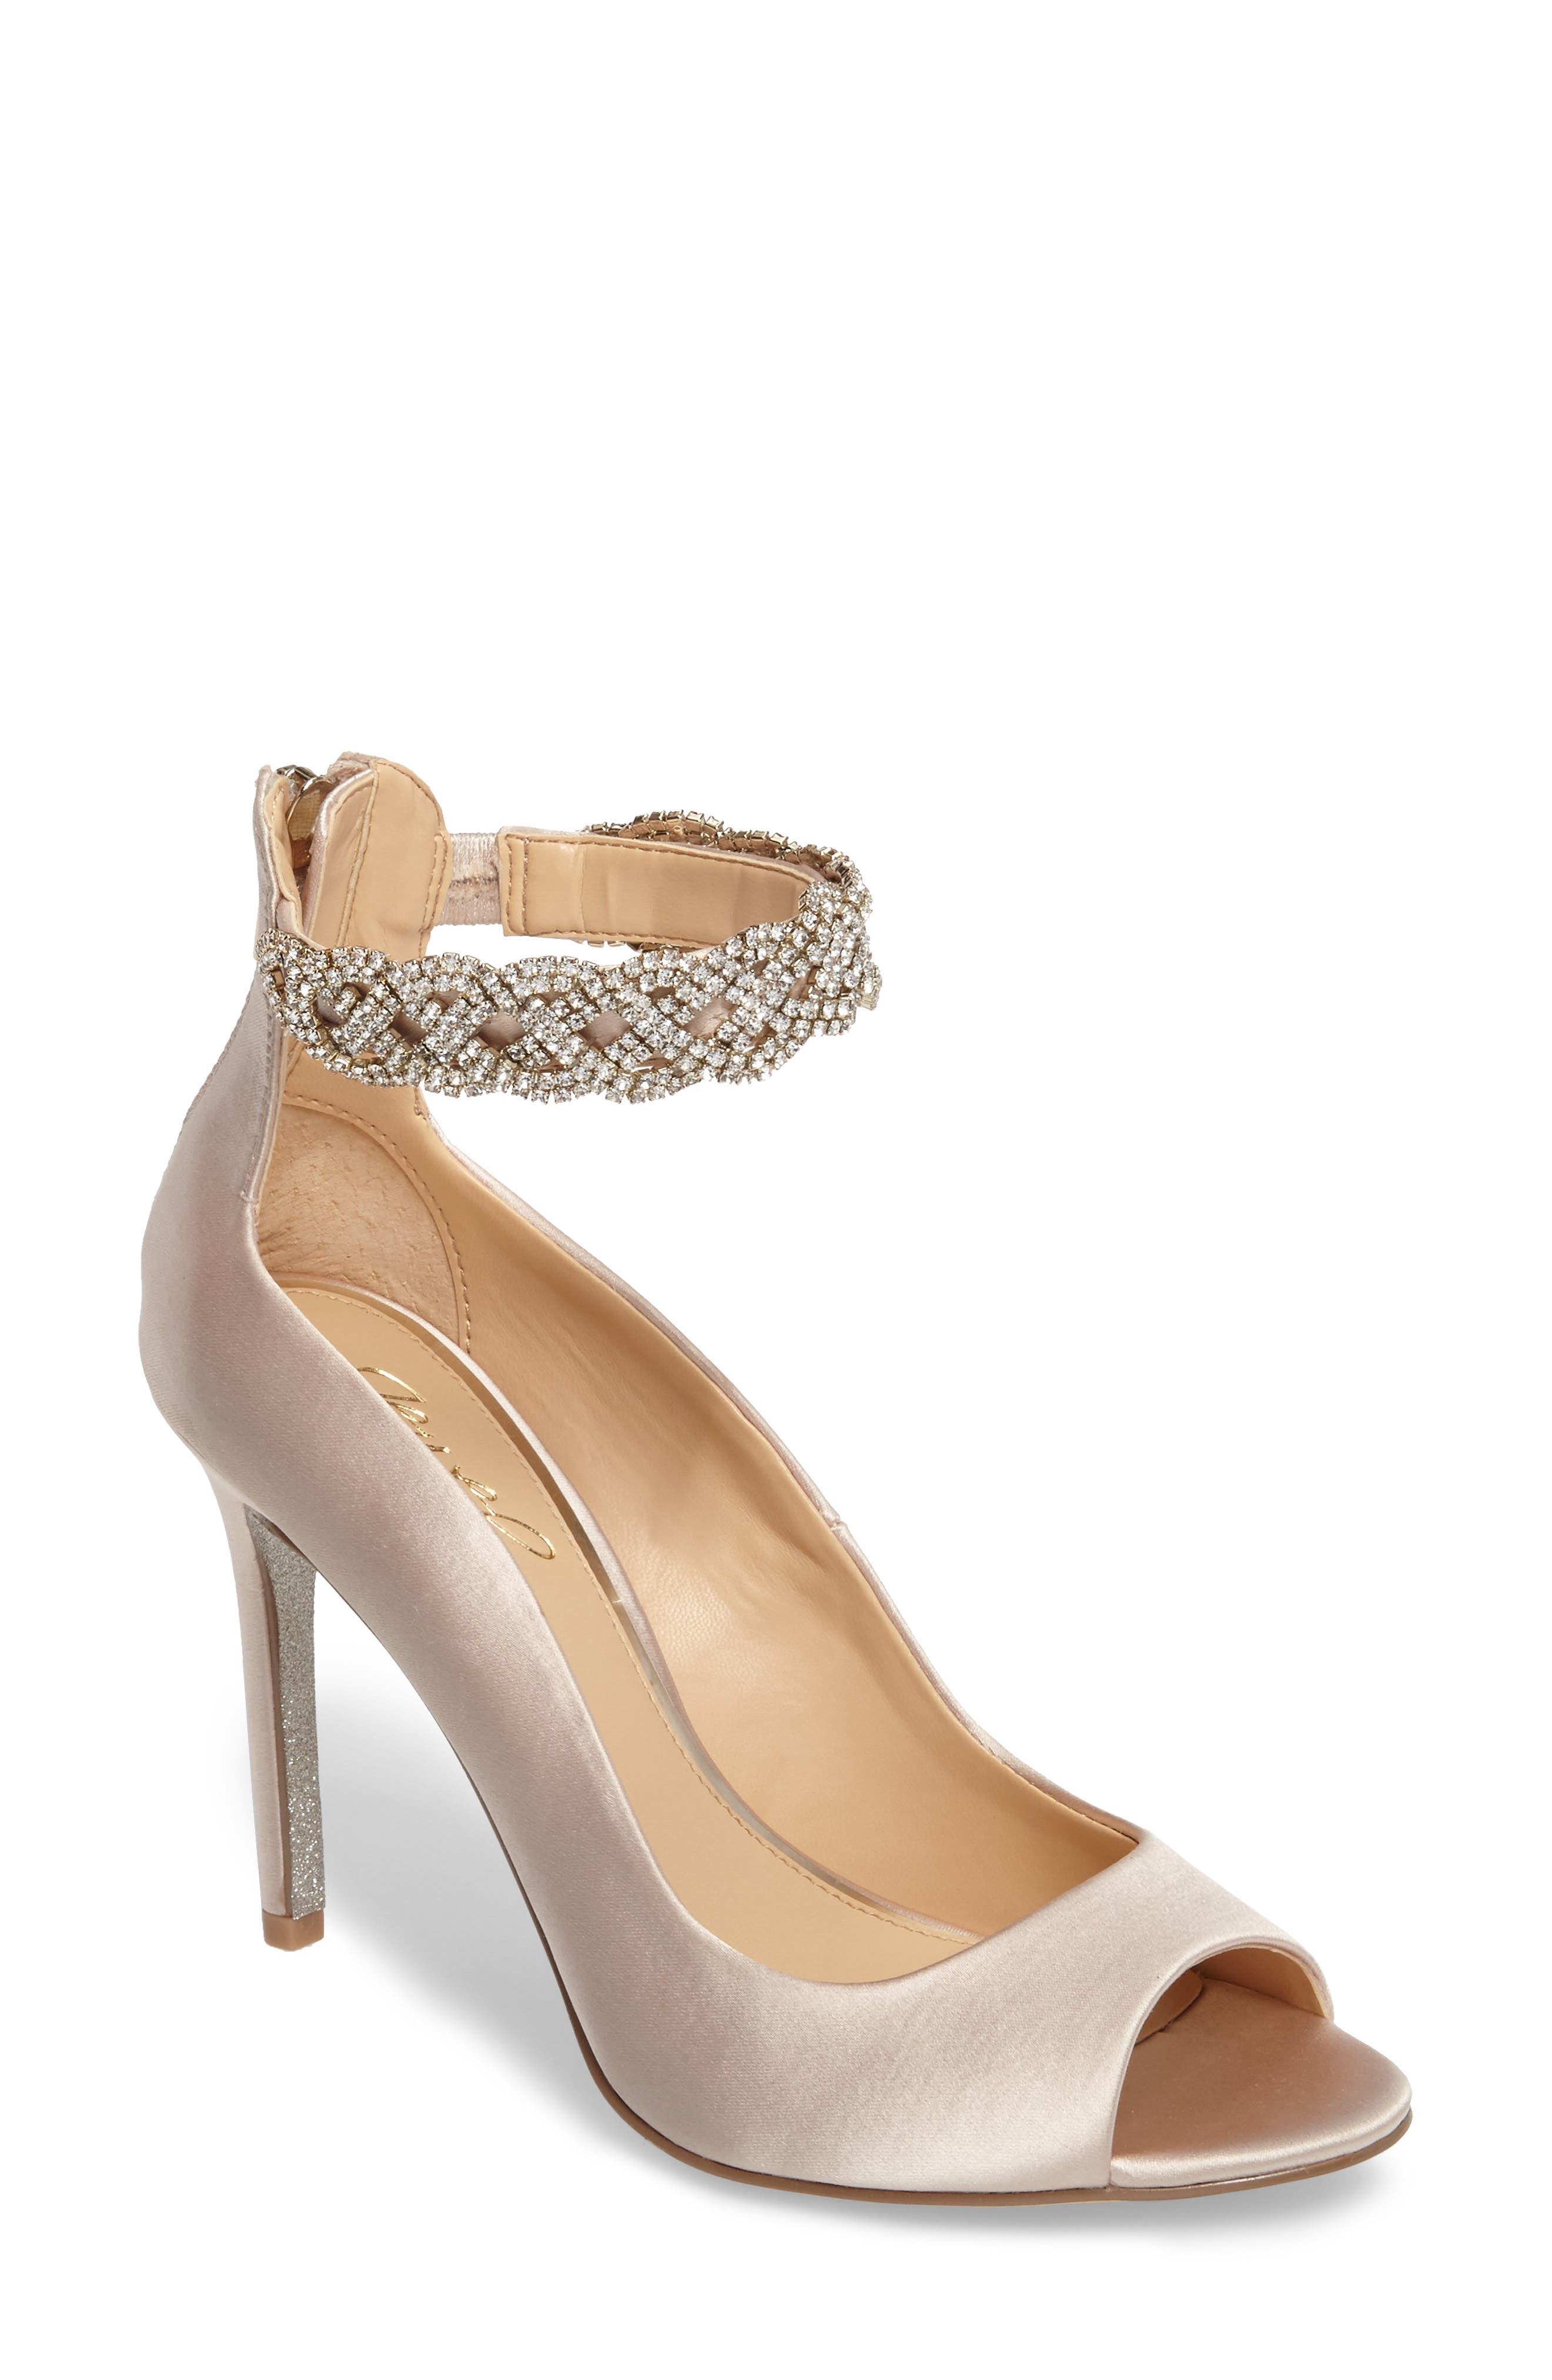 Alanis Embellished Ankle Strap Pump,                             Main thumbnail 1, color,                             Champagne Satin